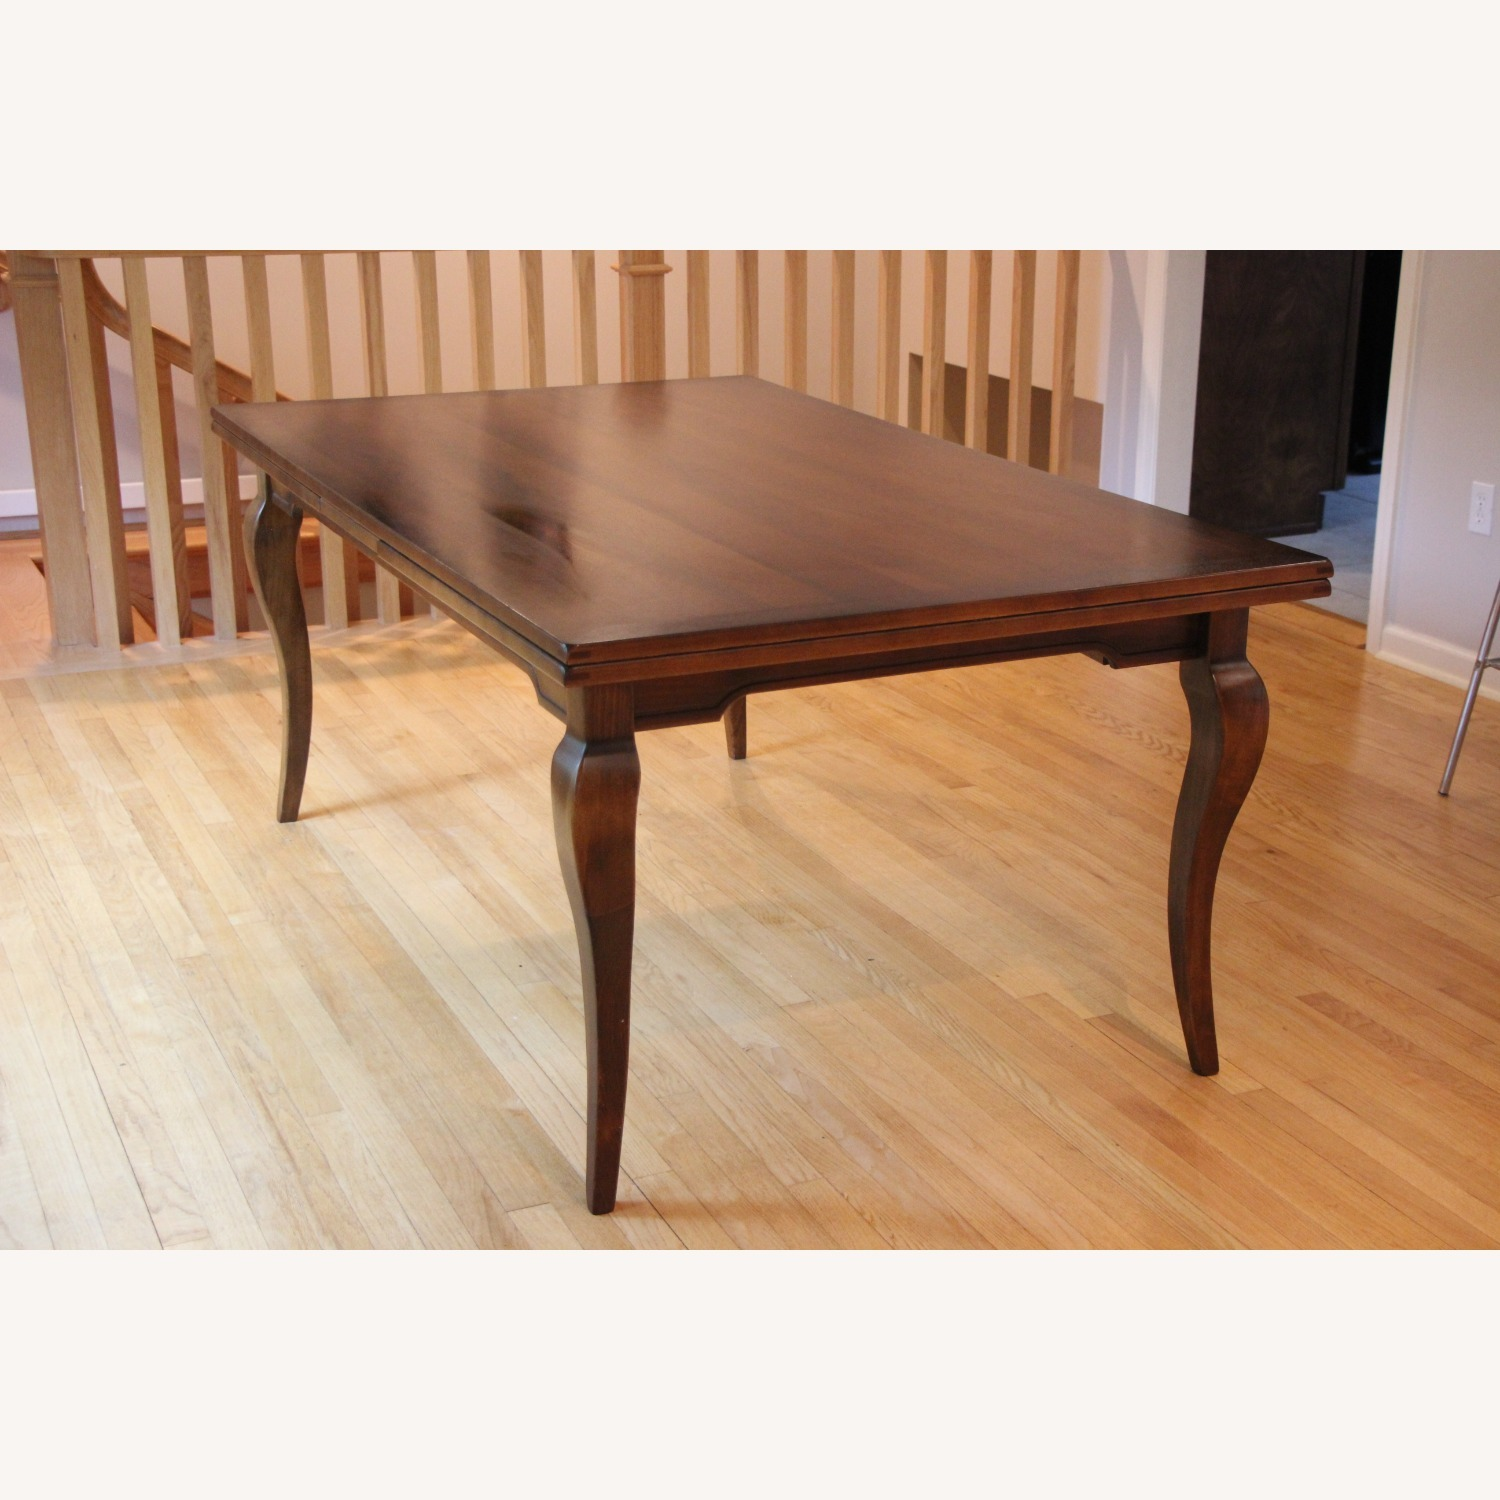 Arhaus Maple Dining Table and Chairs - image-12